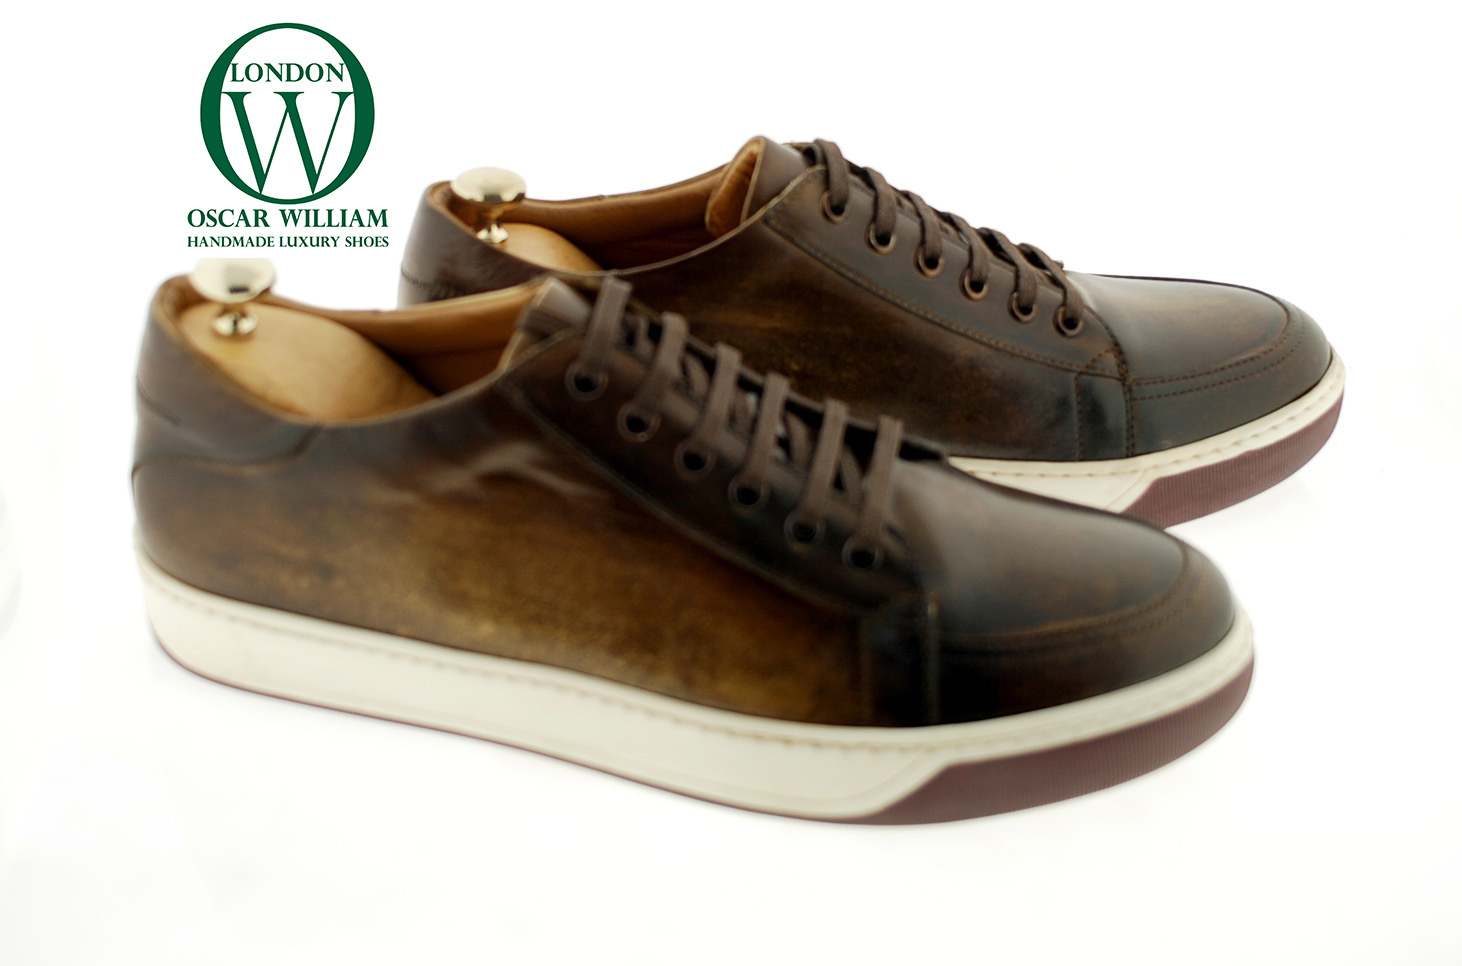 Luxury Classic Sneakers Frank Brown Patina Oscar